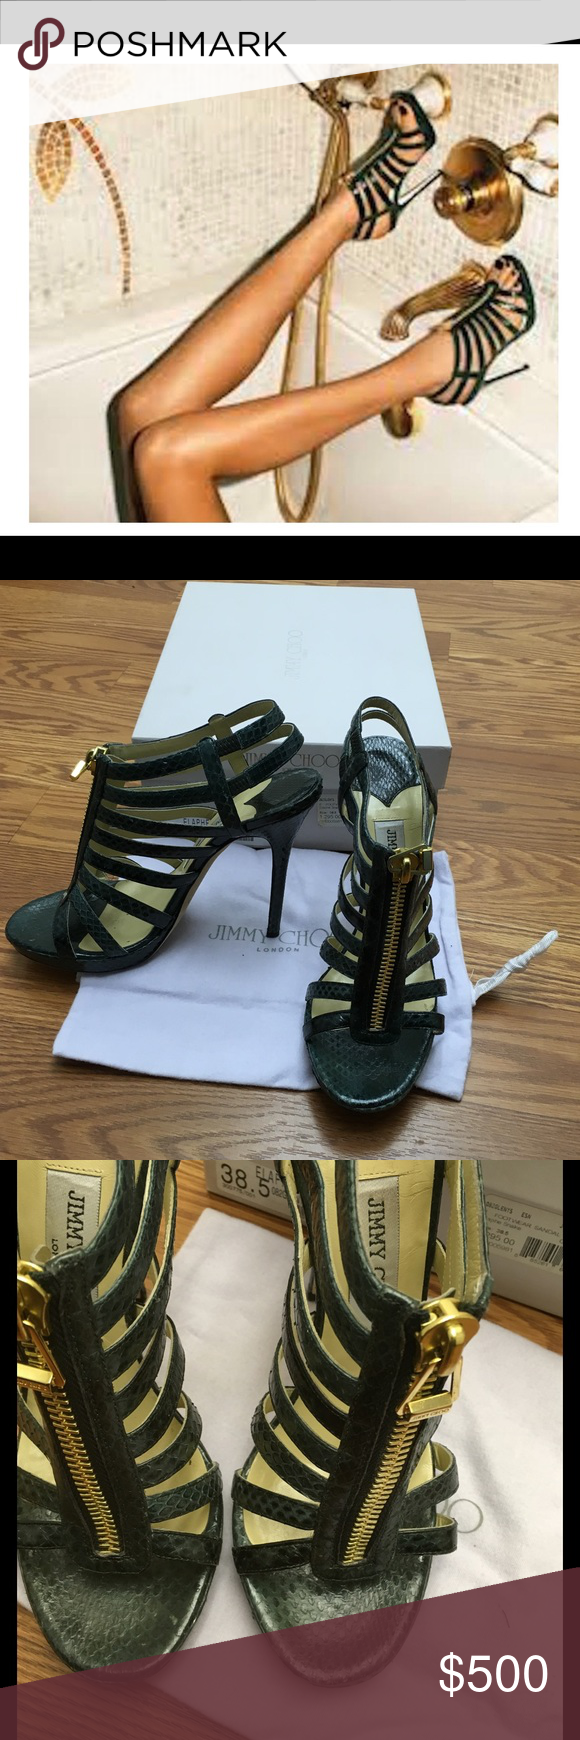 fd2e5f0c10cd Jimmy Choo Glenys In Elaphe Snake Green I obsessed over these due to that  add and